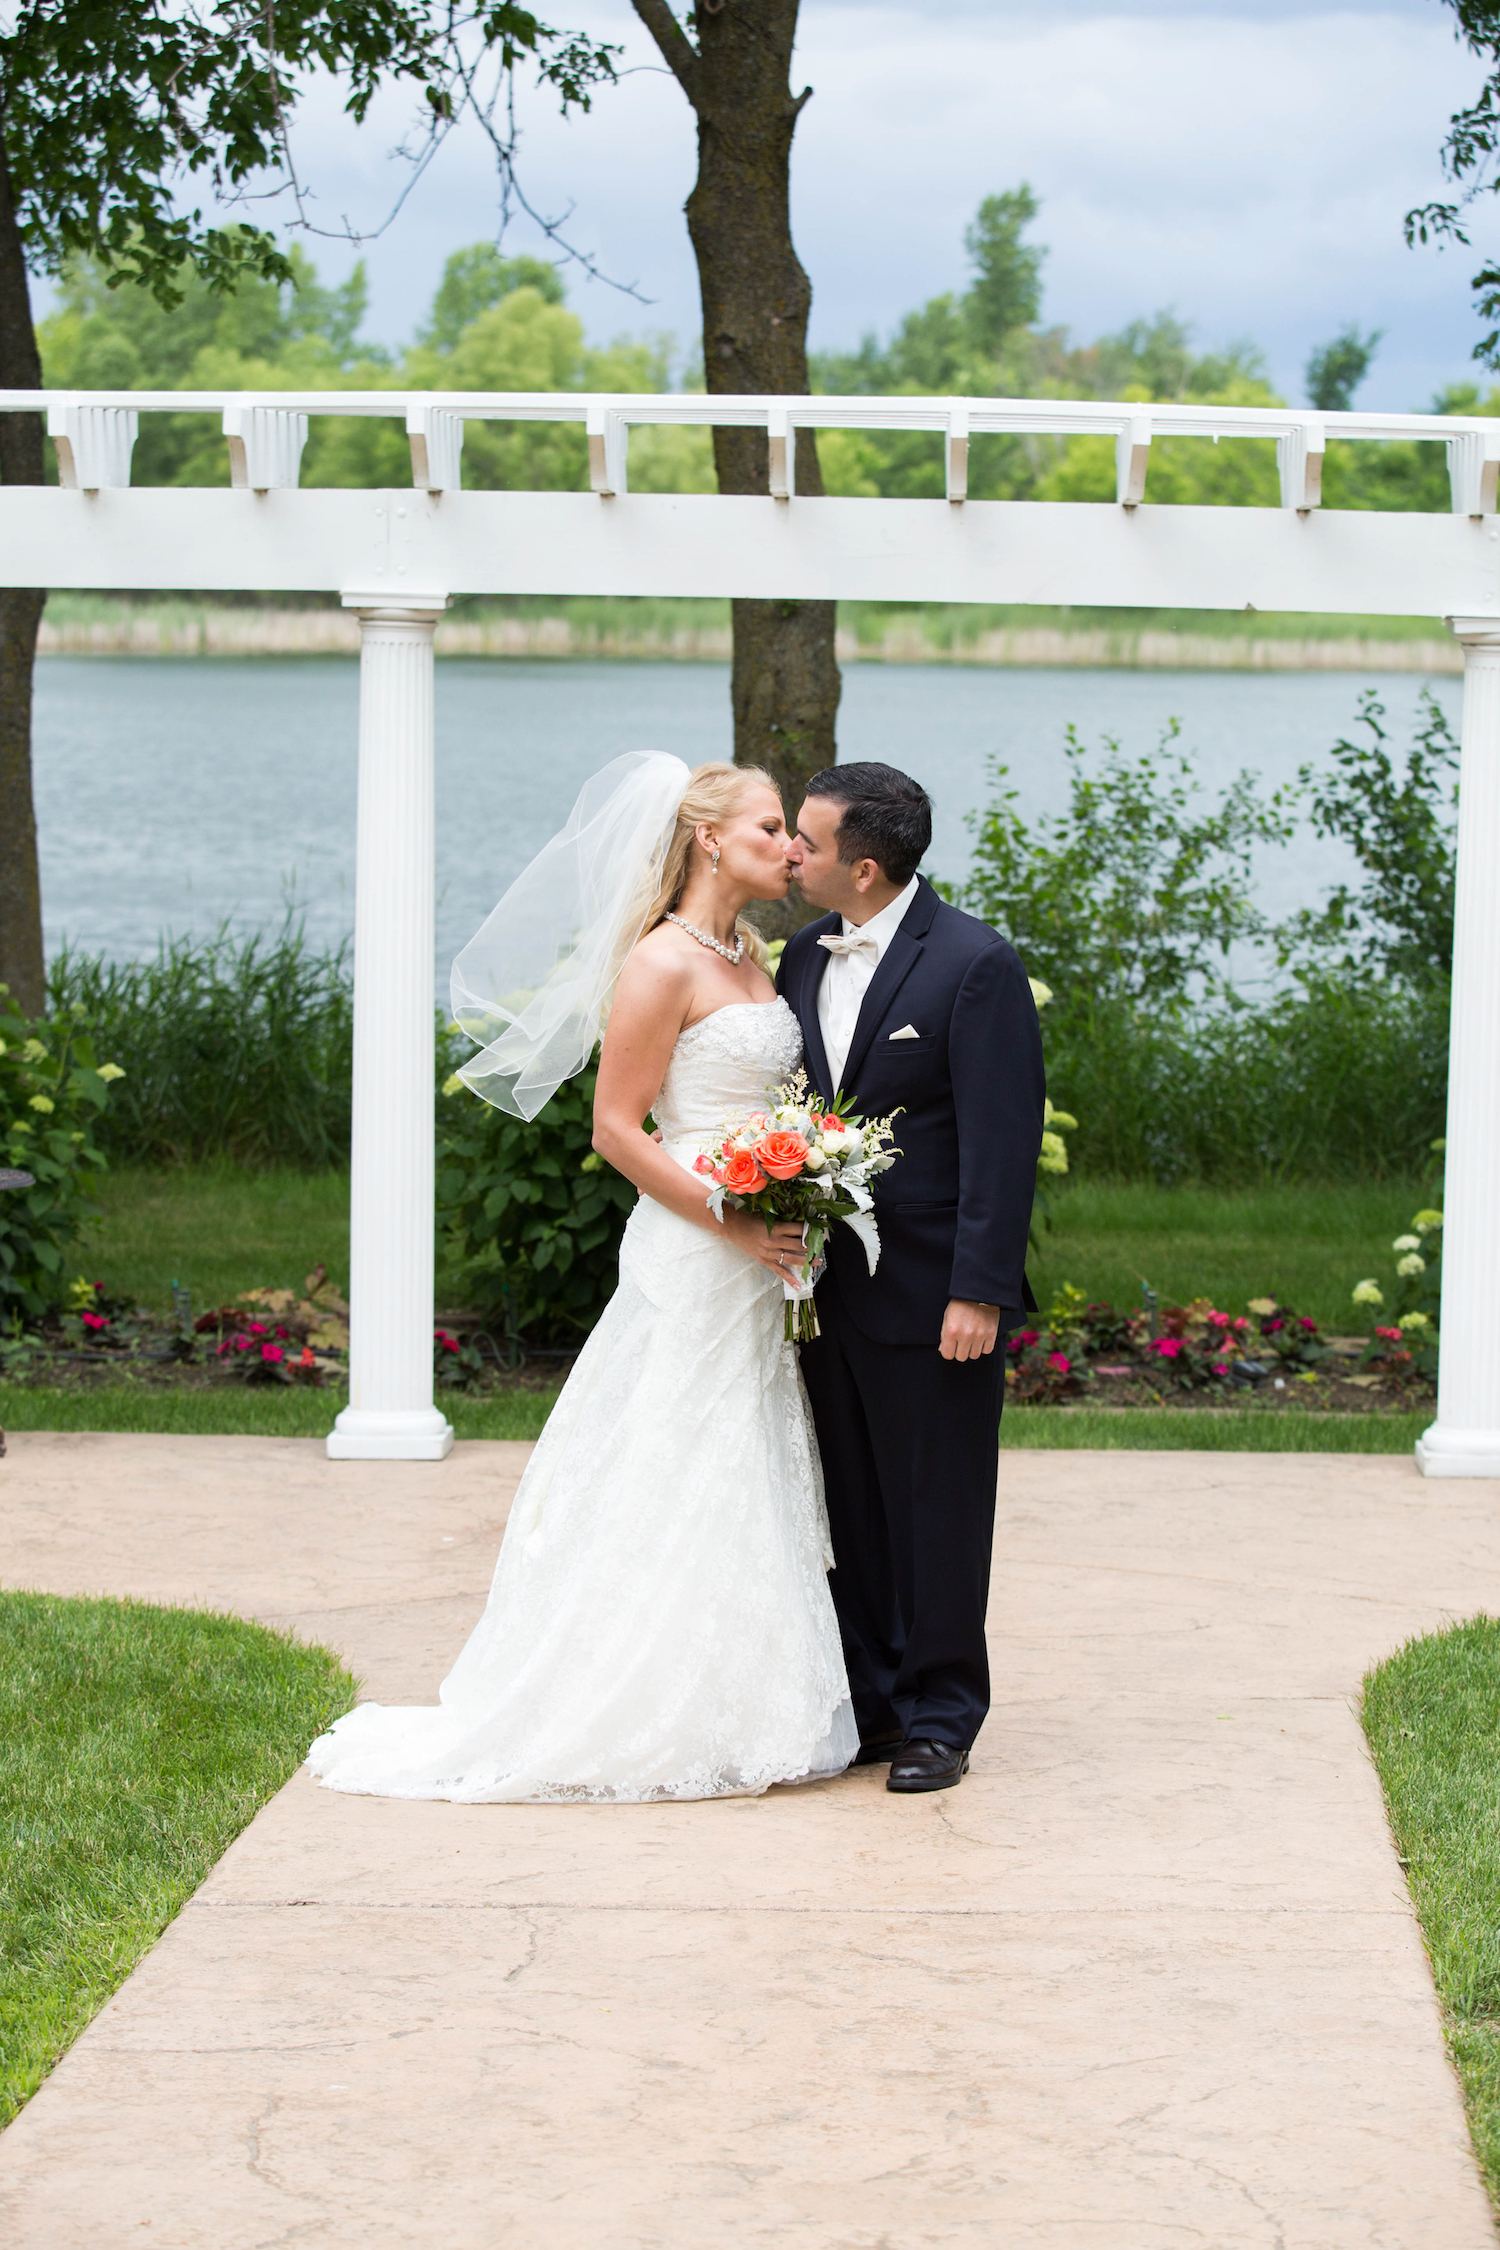 Cindyrellas Garden, outdoor lake ceremony in Minnesota, built in arbor